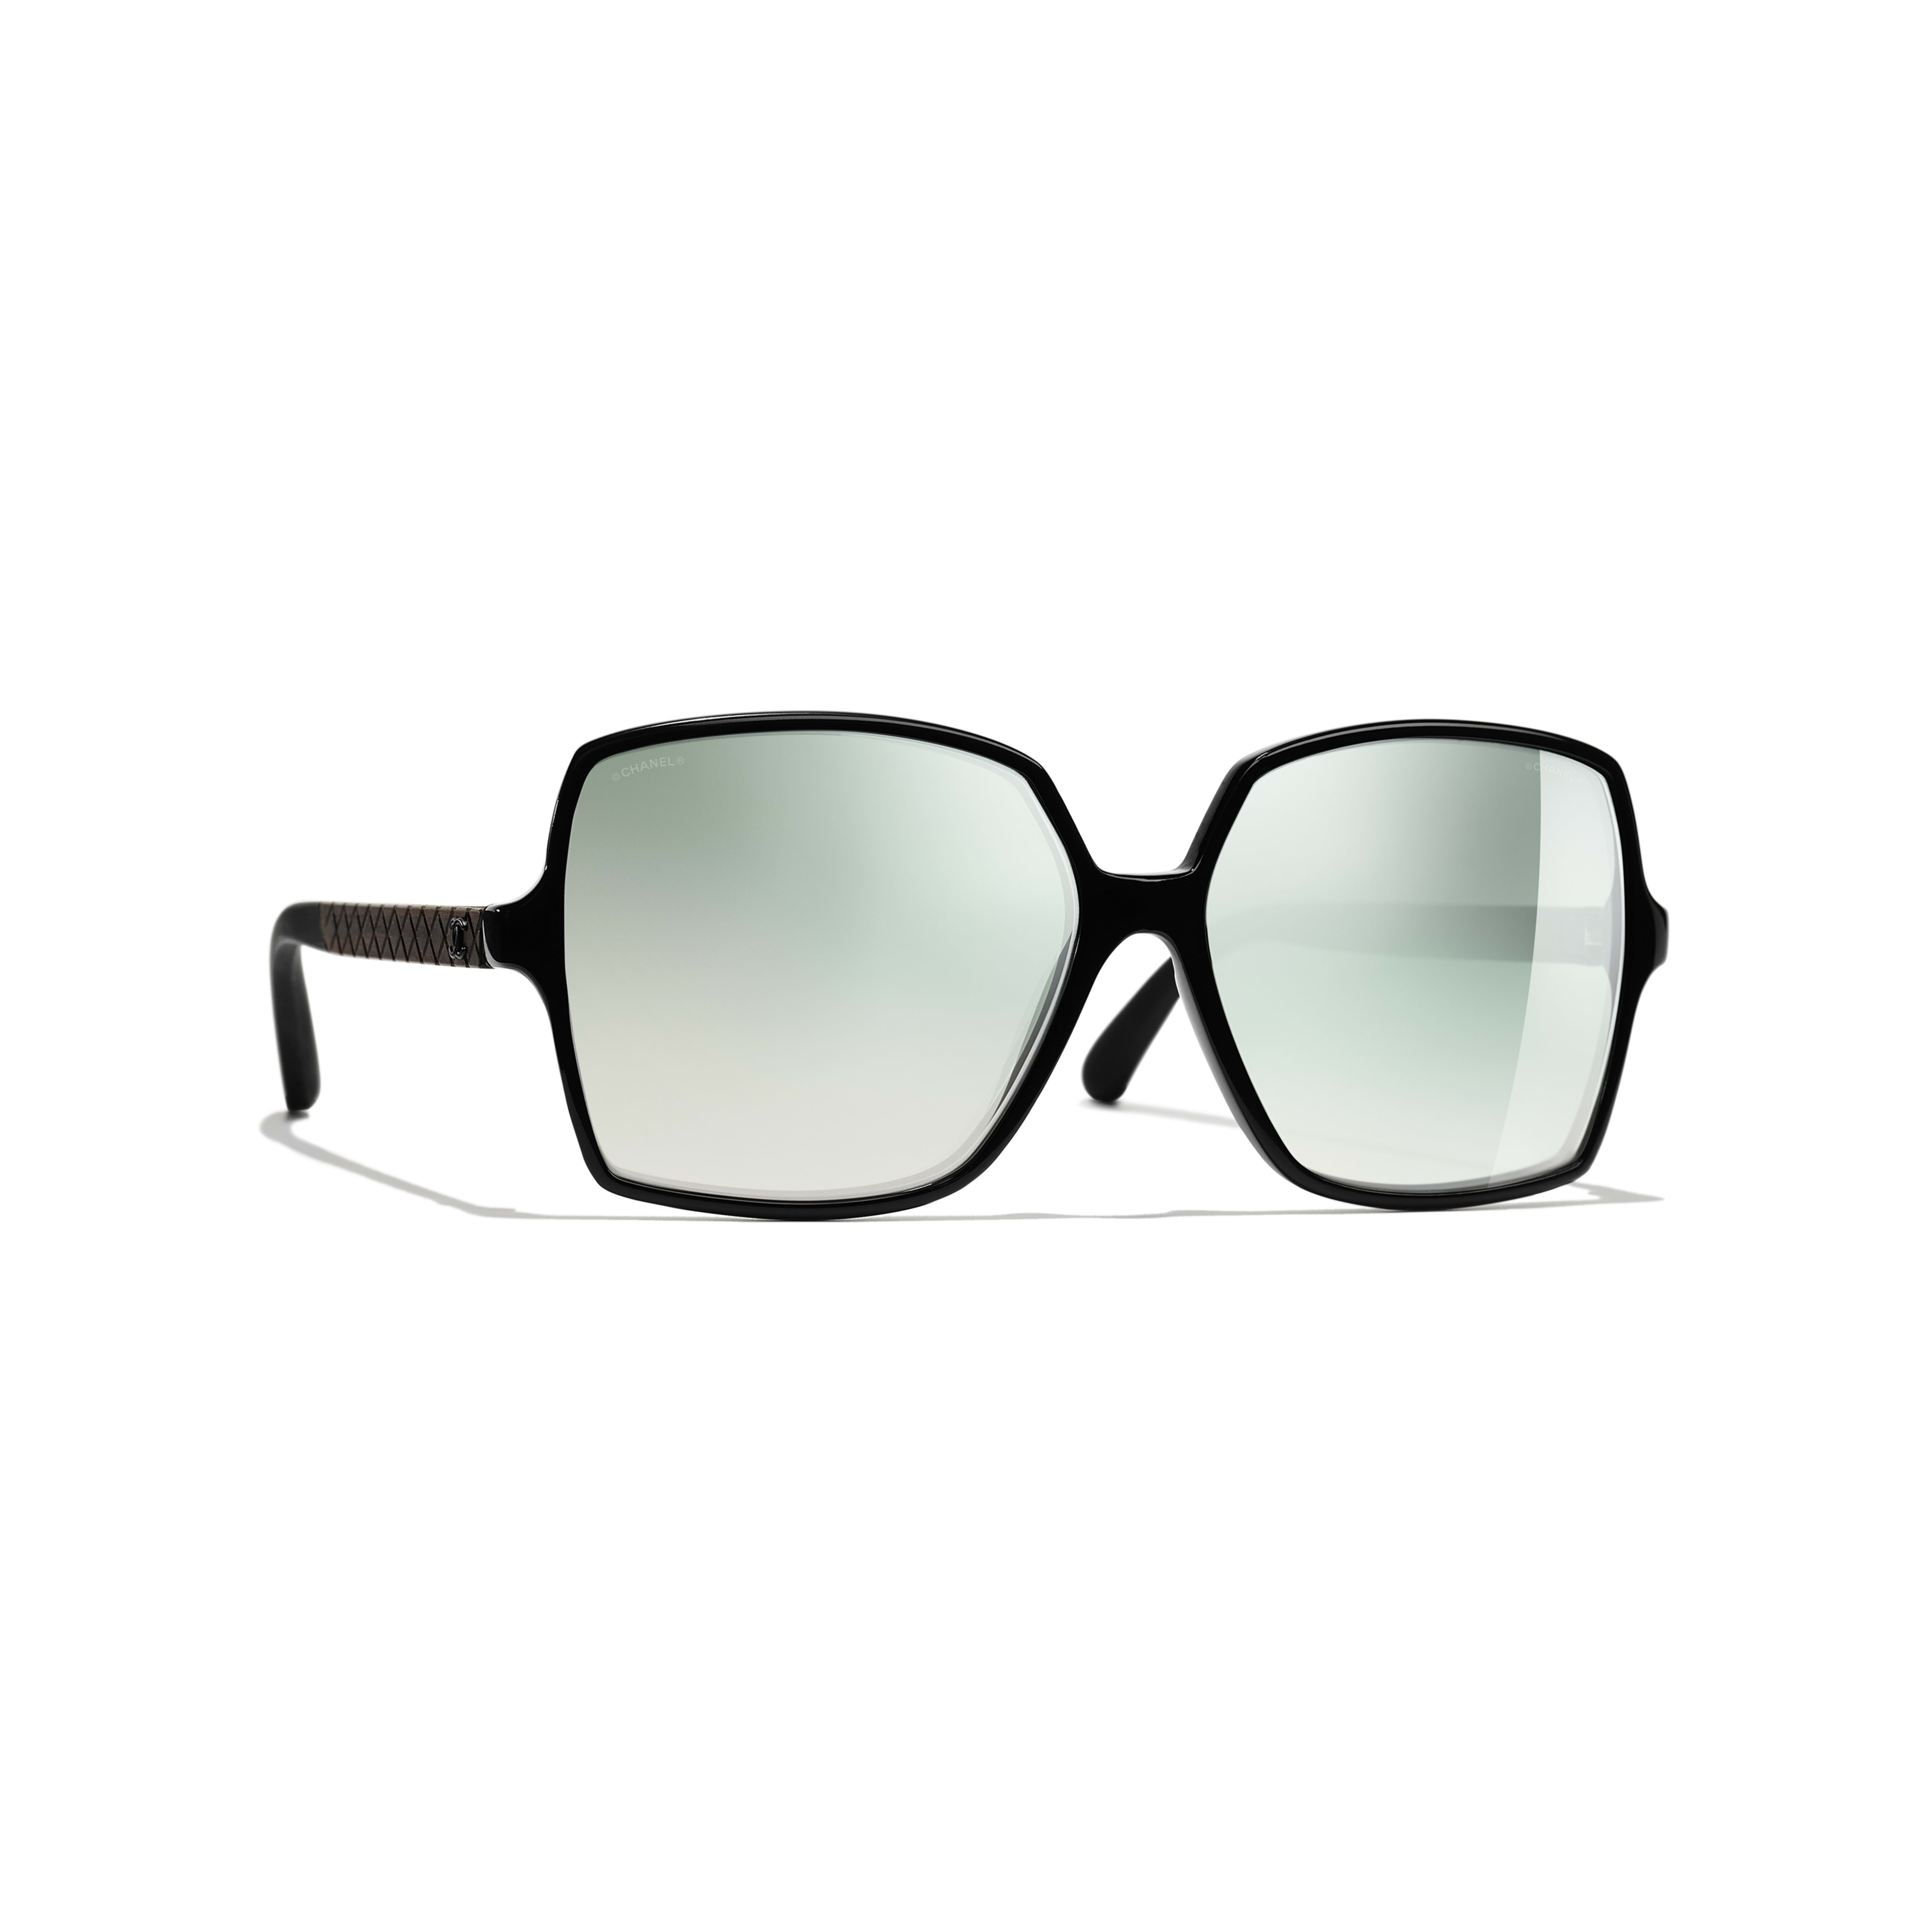 Square Sunglasses - Black - Acetate, Wood & Rubber - Default view - see full sized version